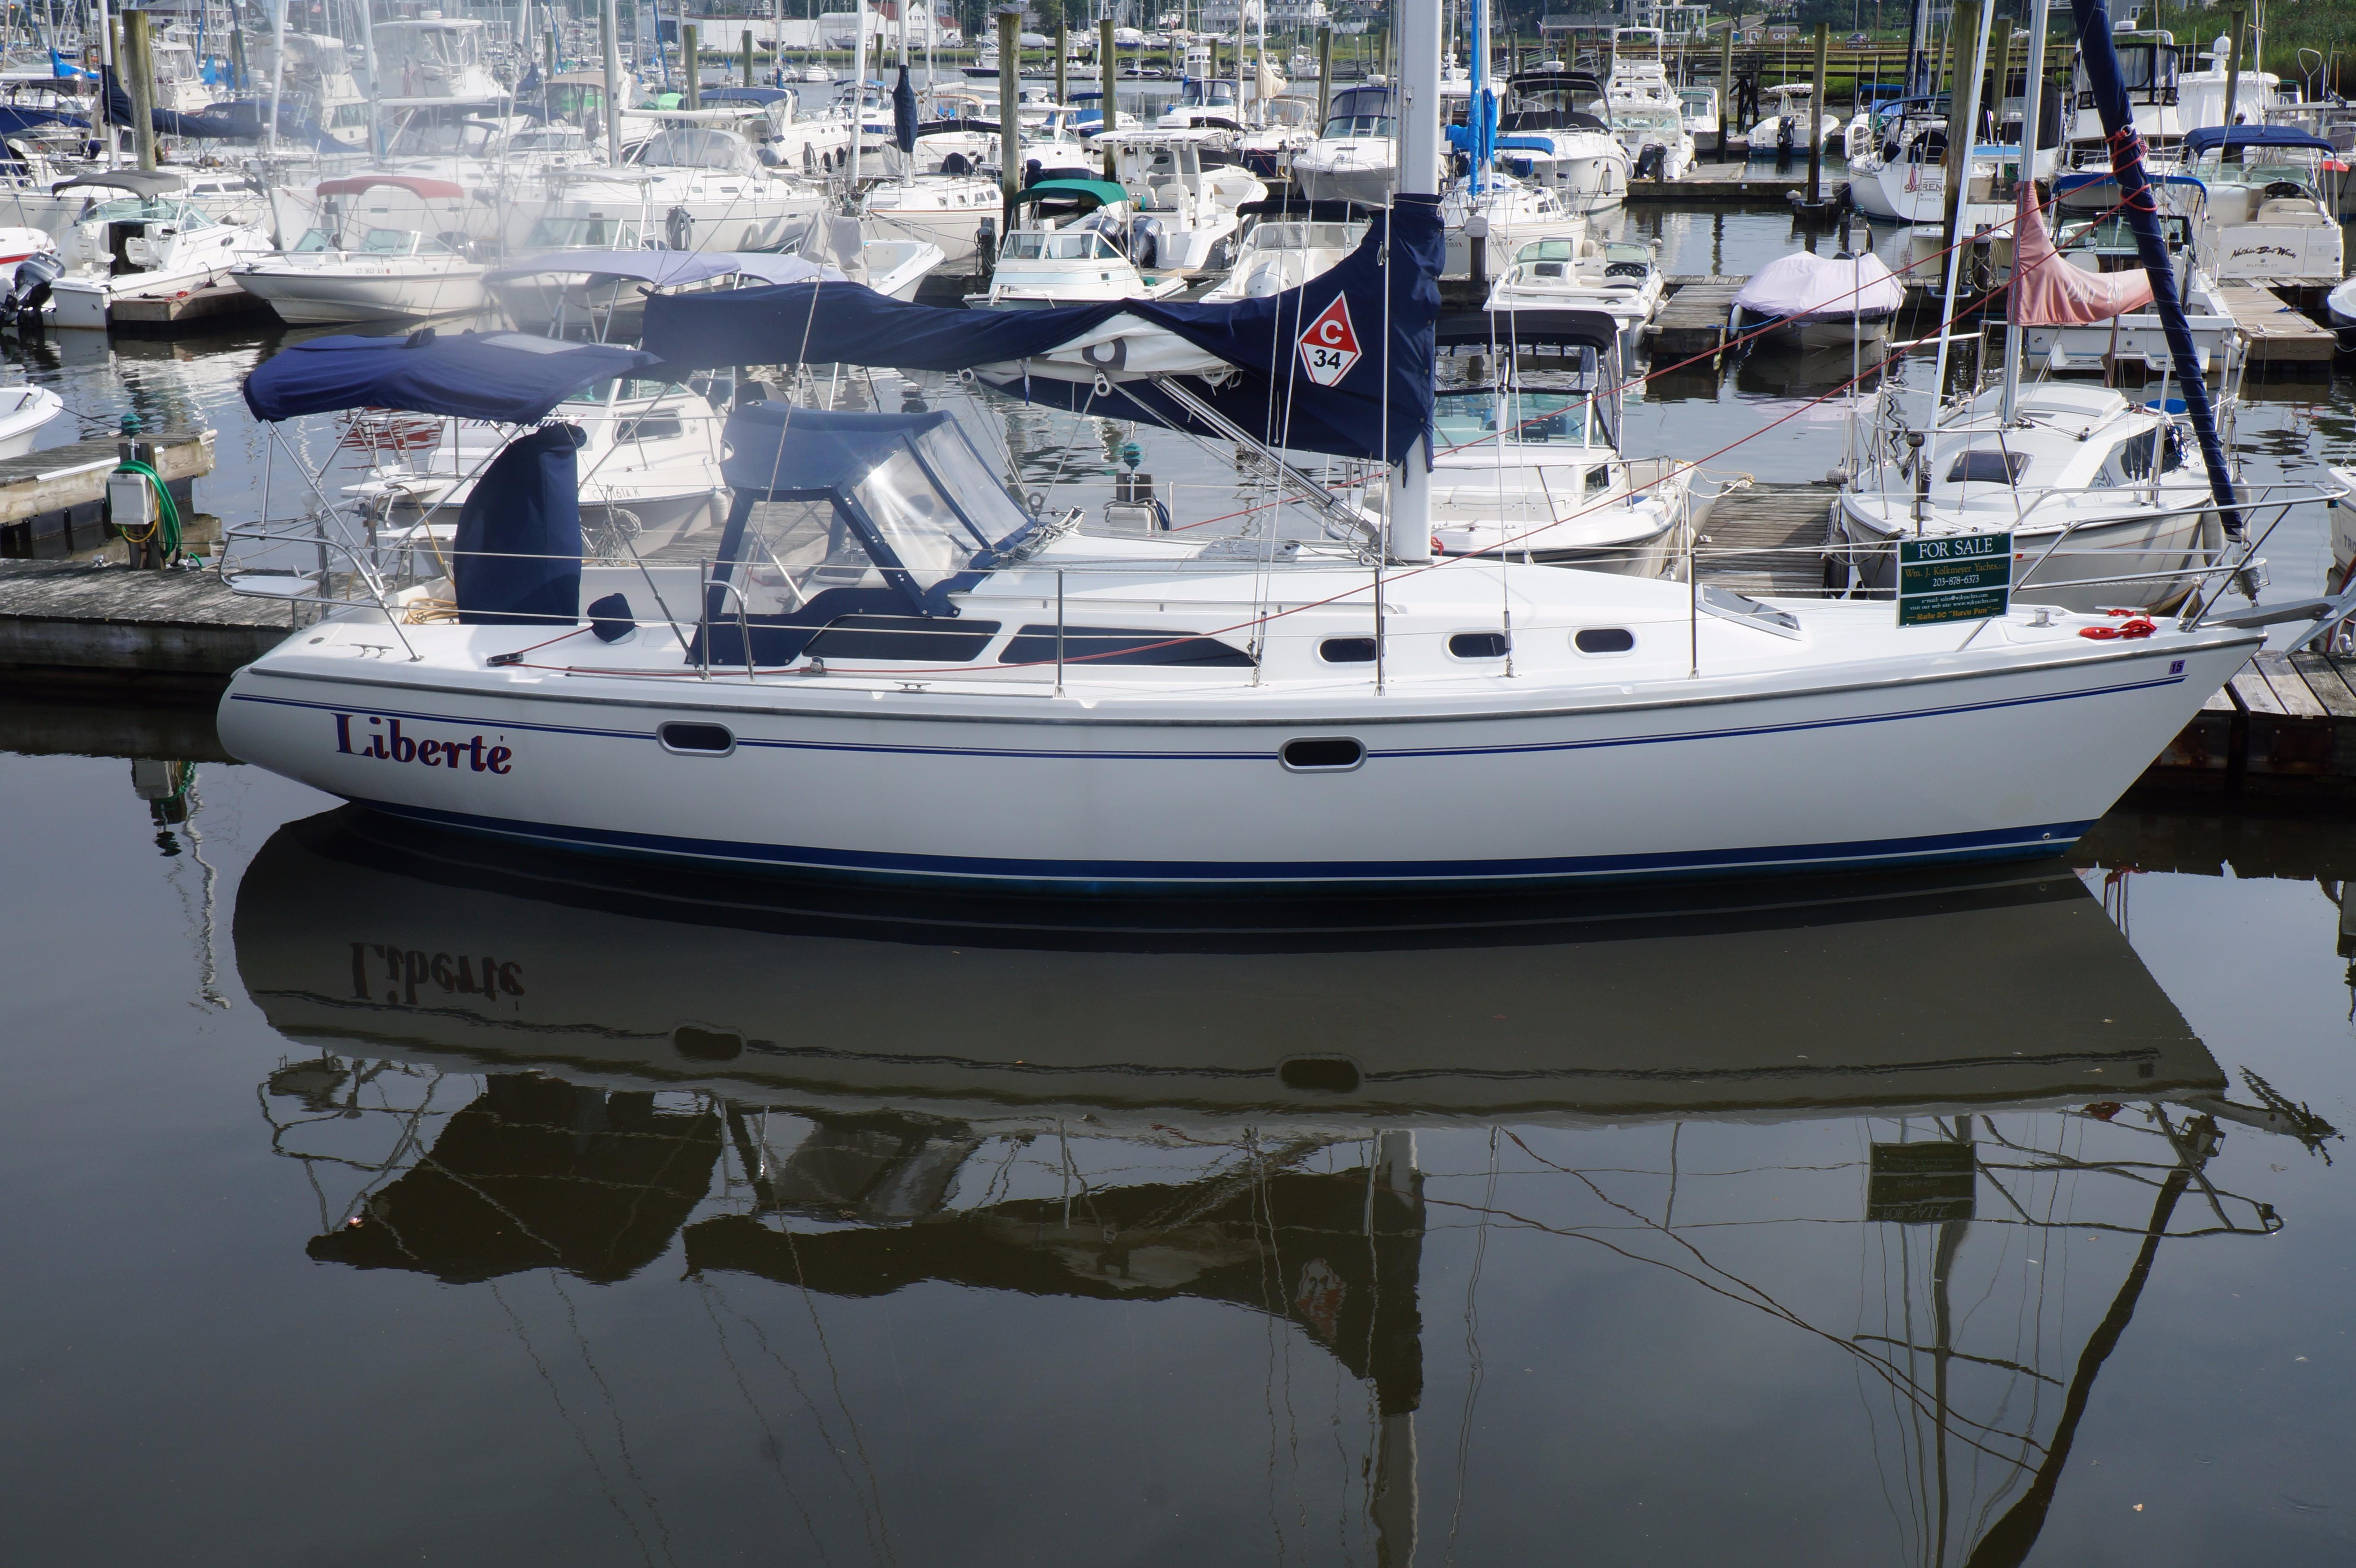 2001 catalina 34 mkii sail boat for sale www yachtworld com rh yachtworld com Catalina 34 Specs Catalina 34 Mkii Review